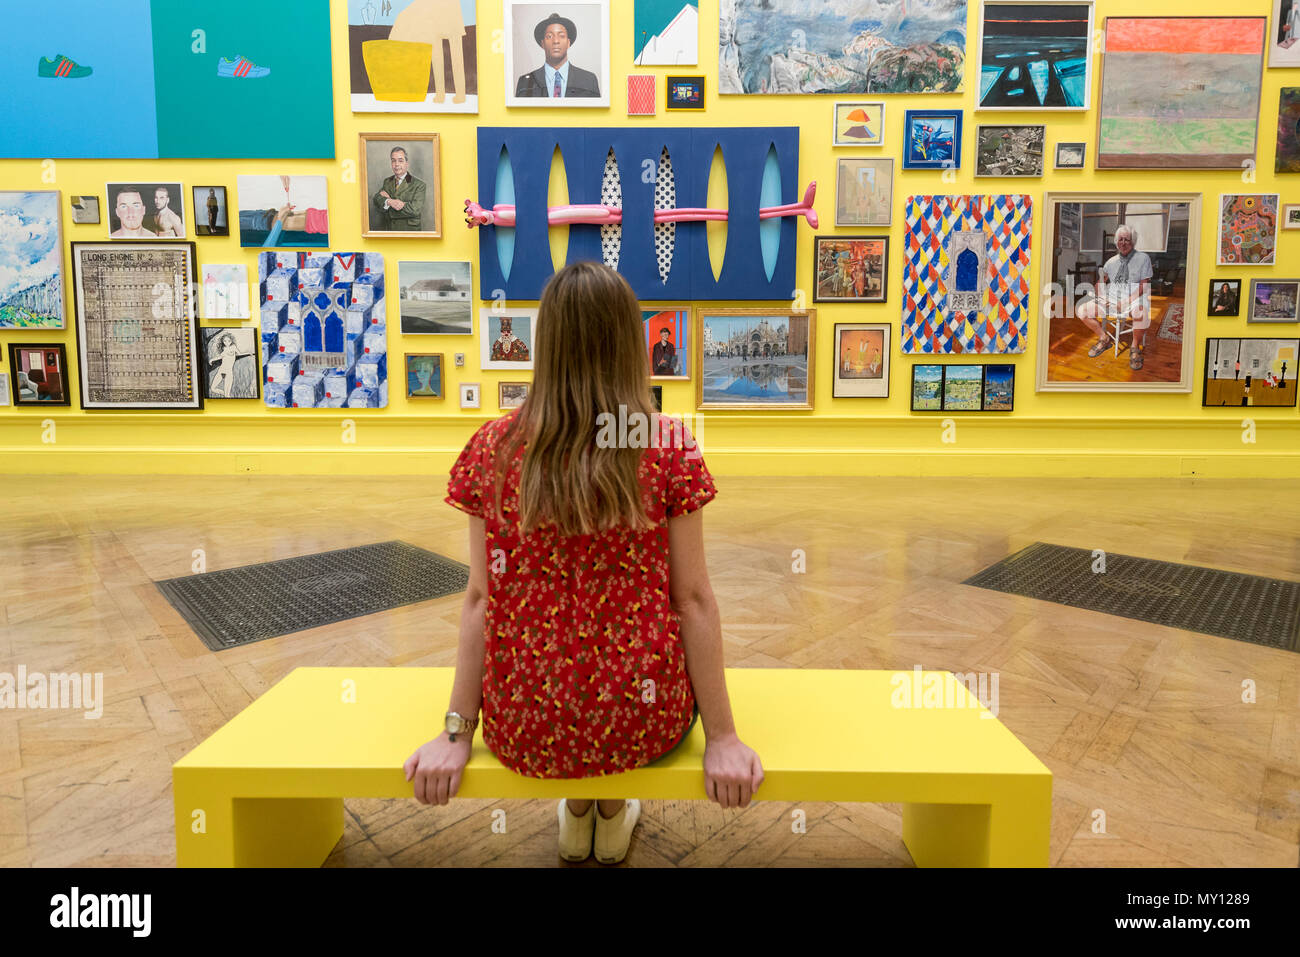 London, UK.  5 June 2018. A staff member sits amidst artworks in a vividly yellow painted gallery at the preview of the 250th Summer Exhibition at the Royal Academy of Arts in Piccadilly, which has been co-ordinated by Grayson Perry RA this year.  Running concurrently, is The Great Spectacle, featuring highlights from the past 250 years.  Both shows run 12 June to 19 August 2018.  Credit: Stephen Chung / Alamy Live News - Stock Image